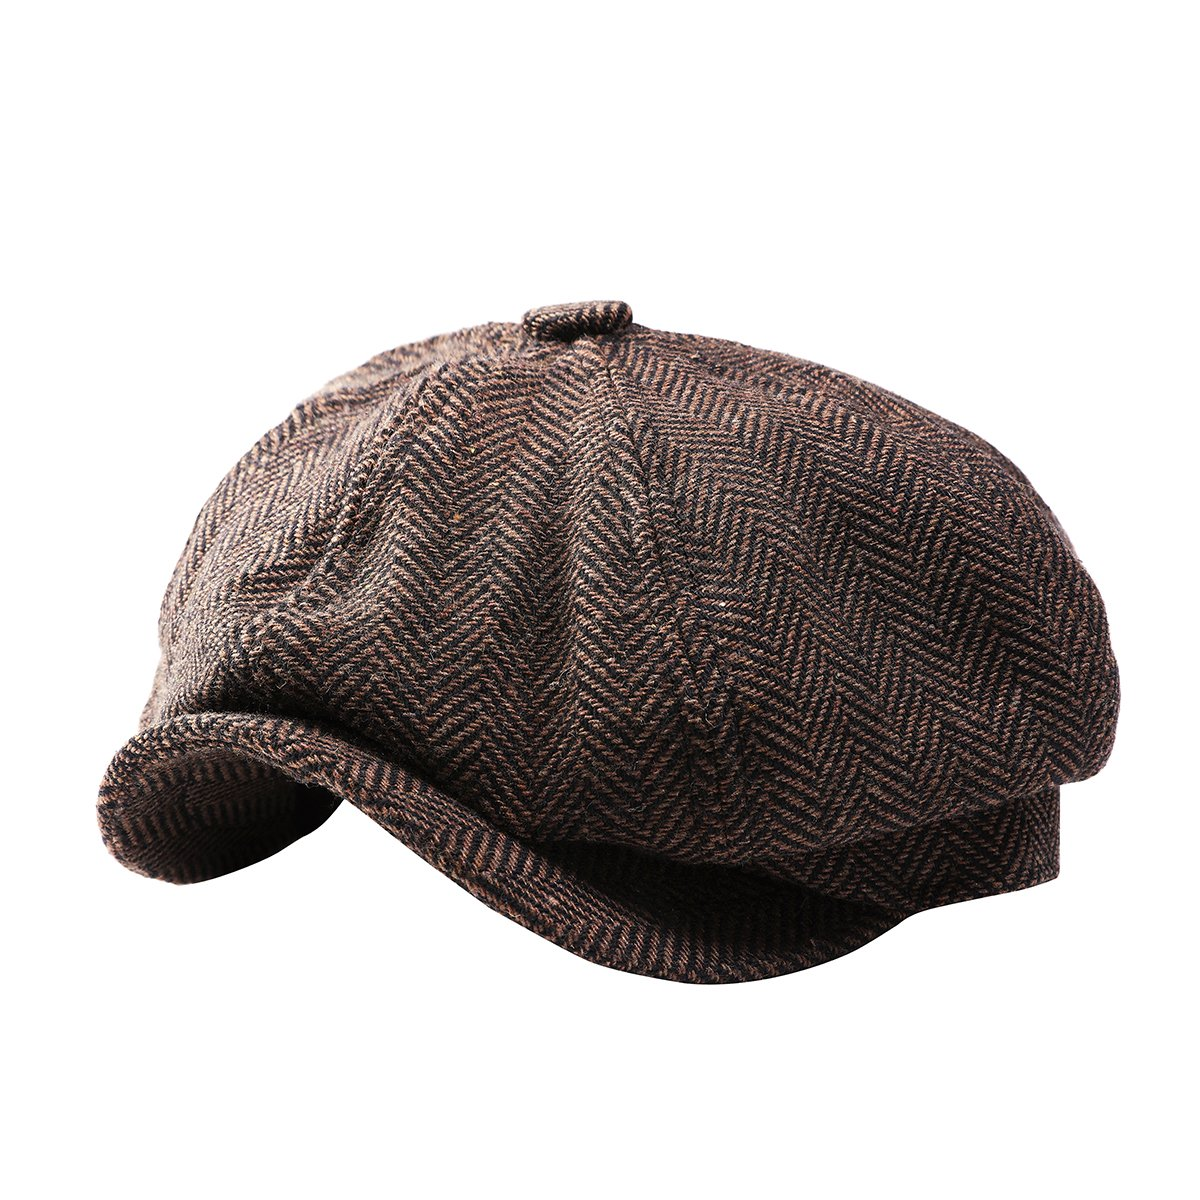 GESDY Mens Vintage Newsboy Ivy Cap Flat Octagonal Golf Driving Hat Beret  Cabbie Gatsby at Amazon Men s Clothing store  3d485df9014d